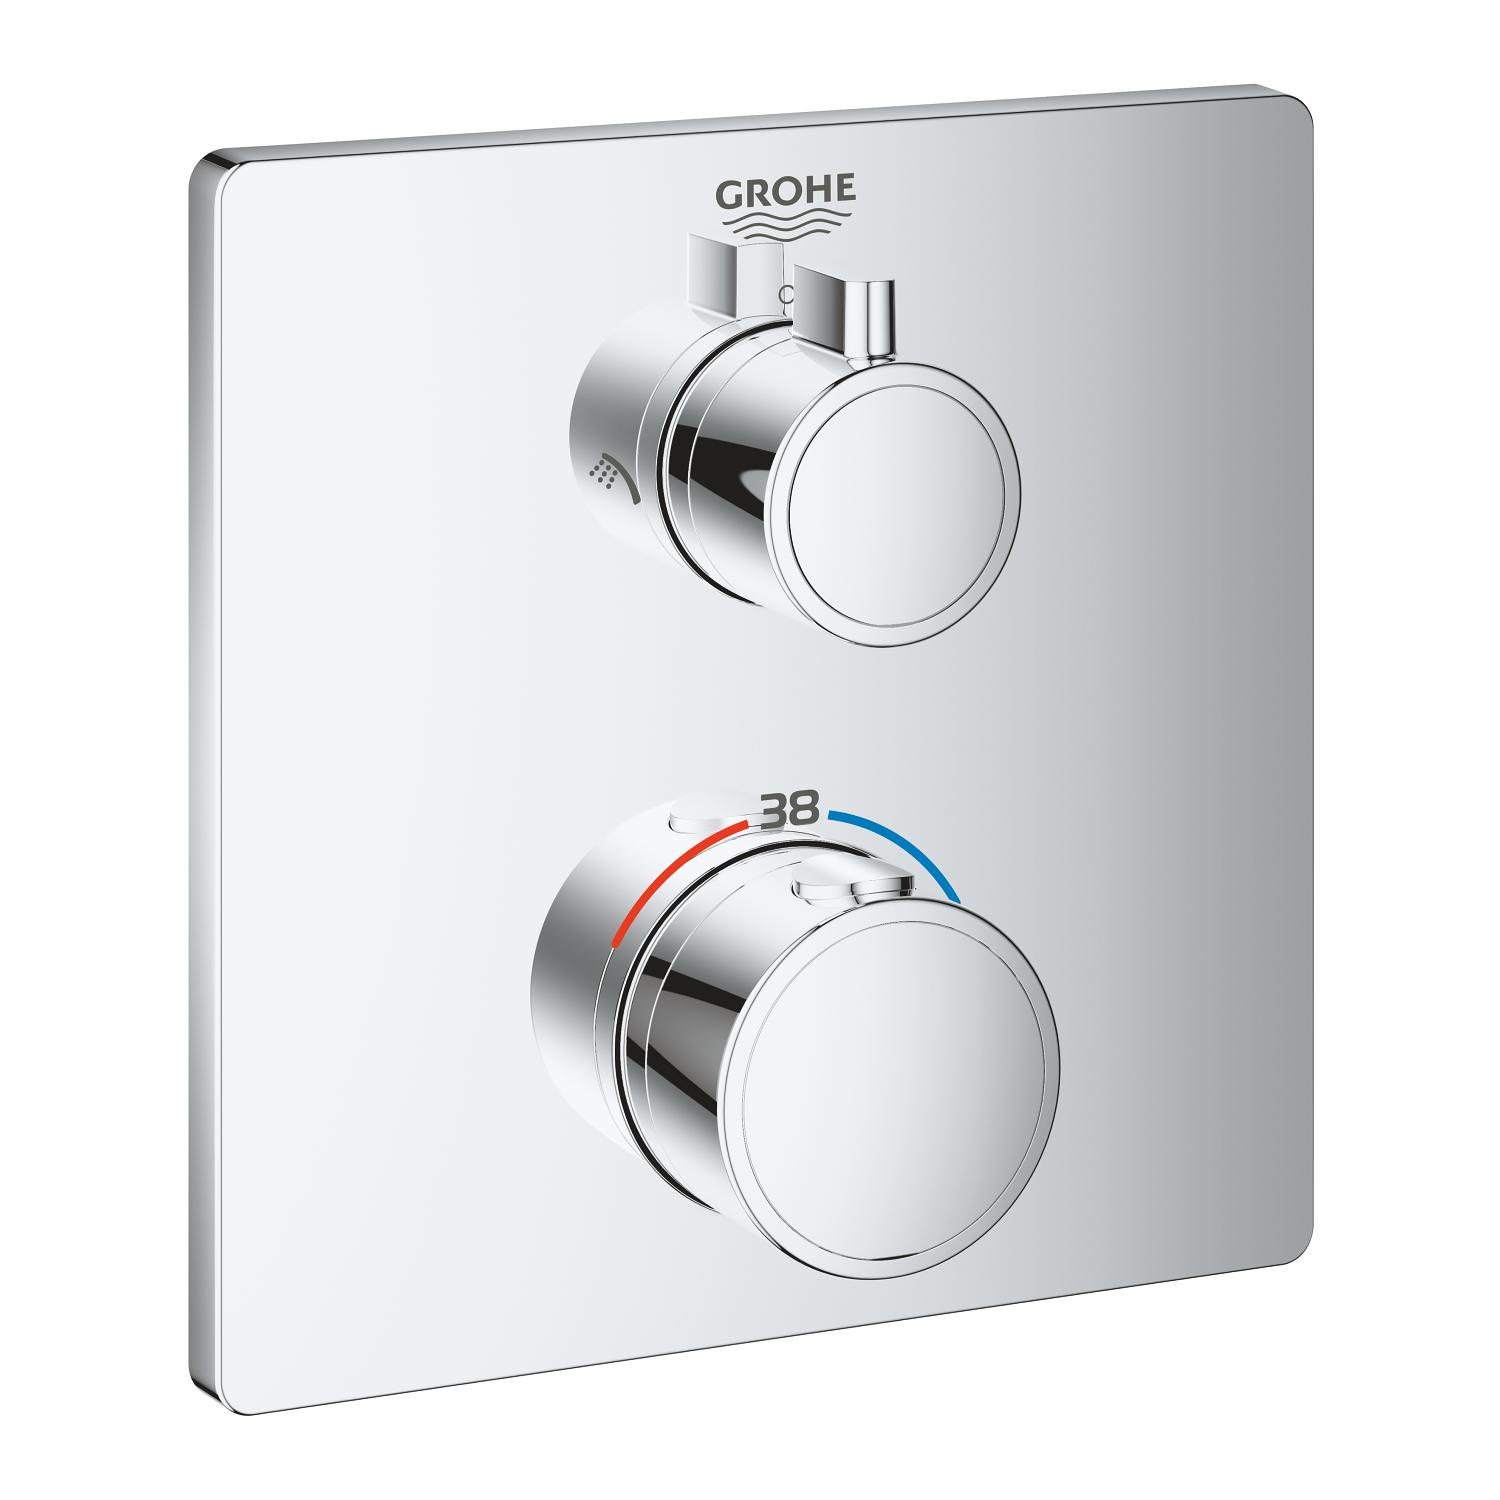 Grohtherm opbouwdeel chroom vierkant m.omstel hoofddouche Grohe